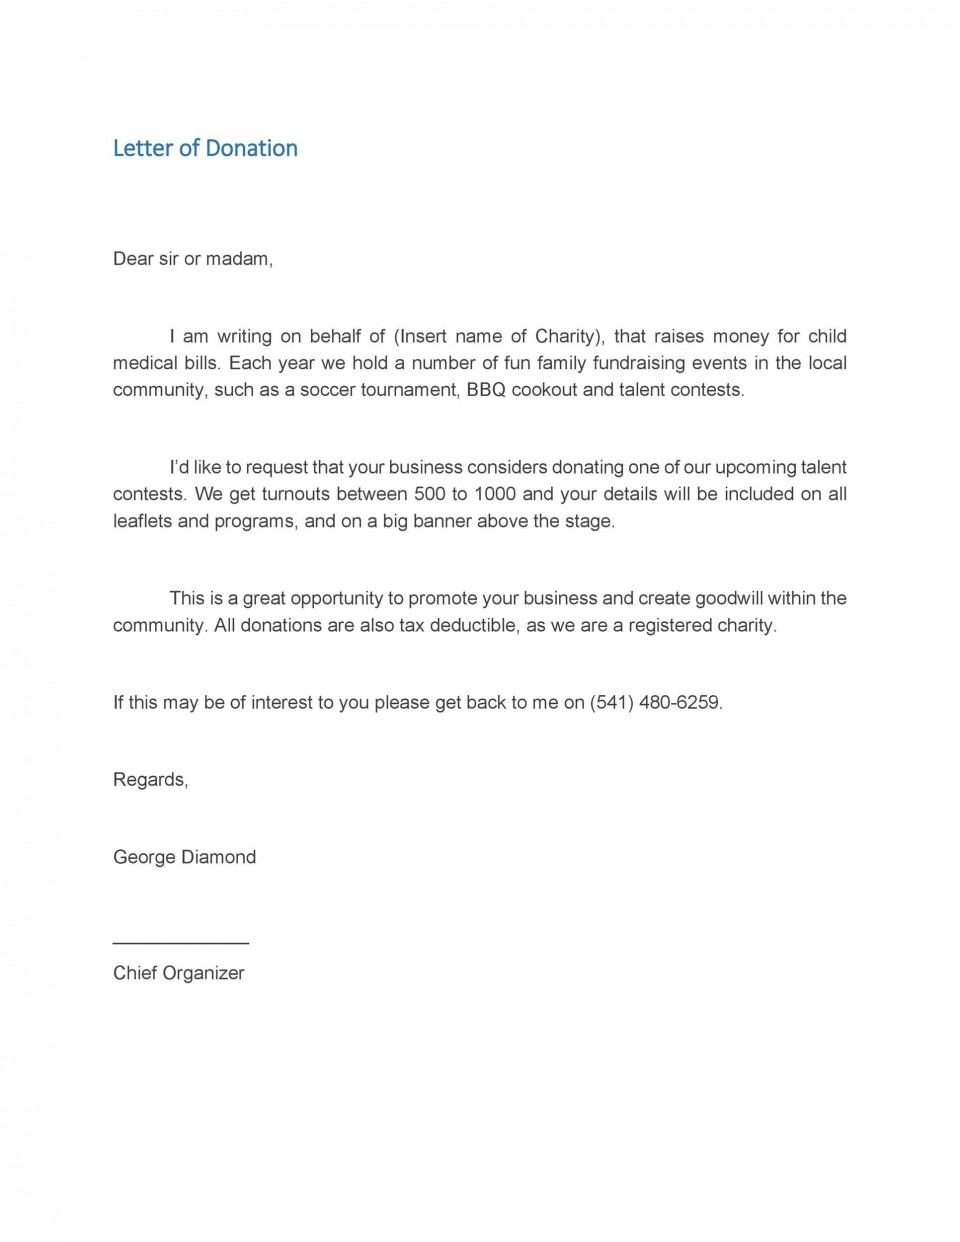 005 Dreaded Fund Raising Letter Template Sample  Fundraising For Mission Trip School Of A Nonprofit Organization960